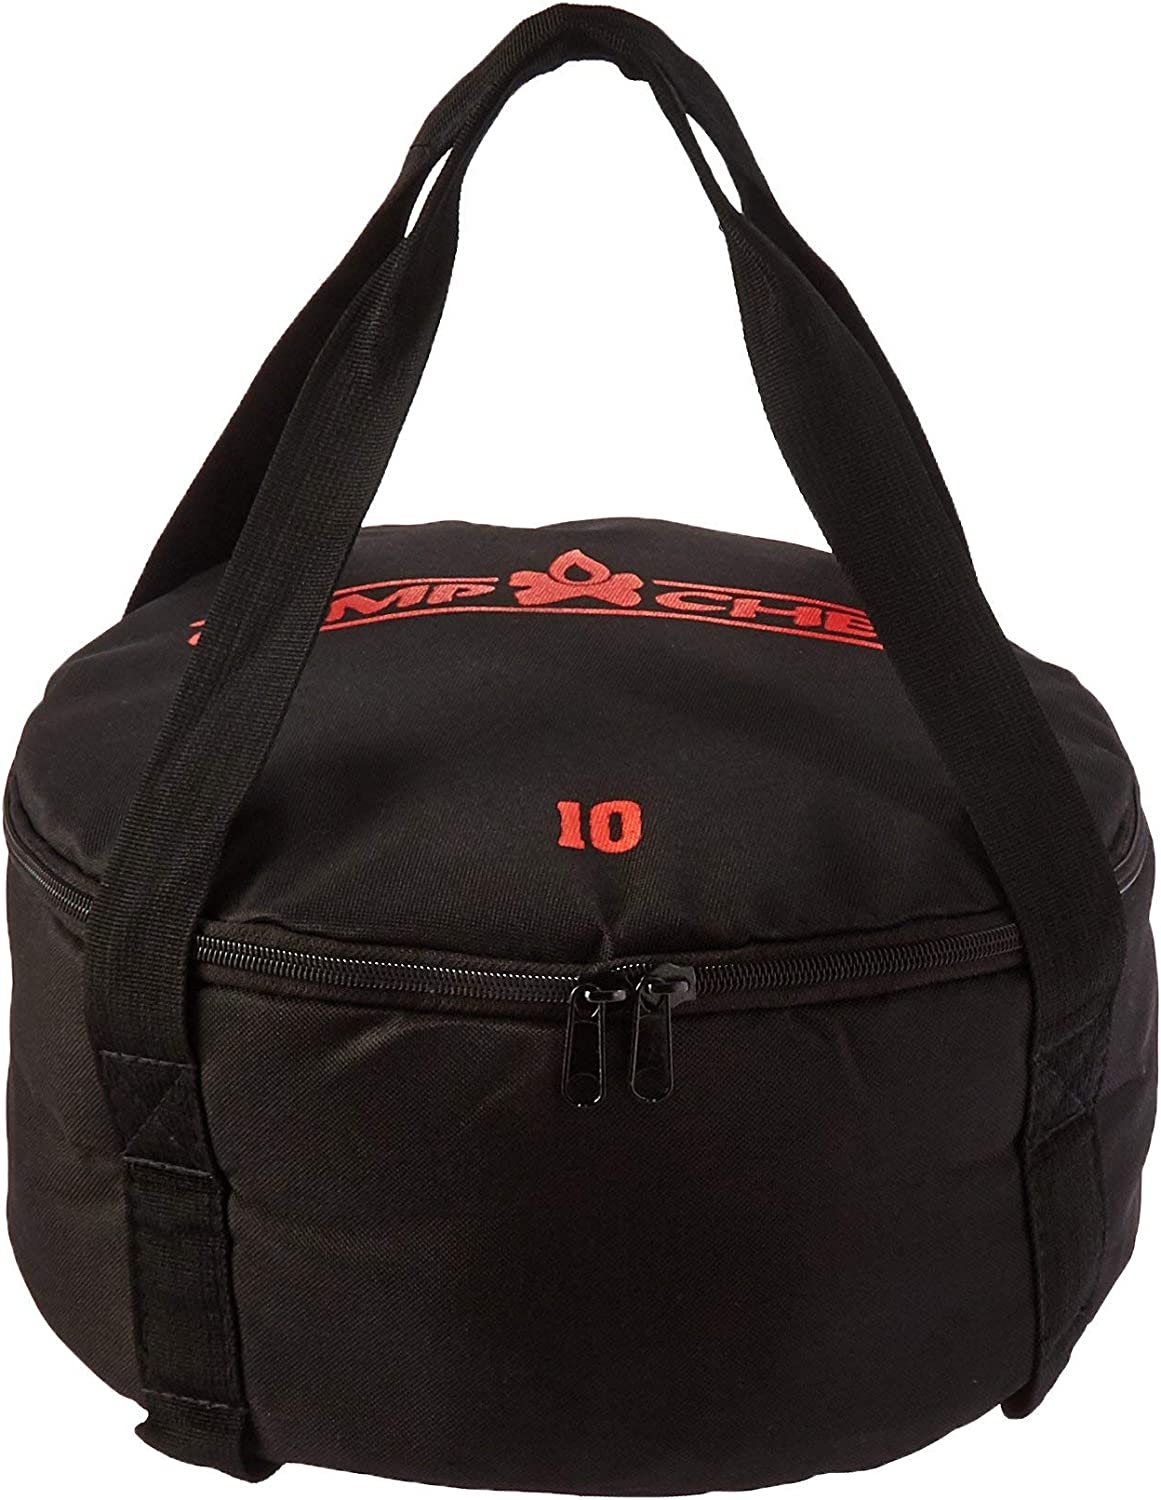 Camp Chef Dutch Oven Carry Bag (Renewed)